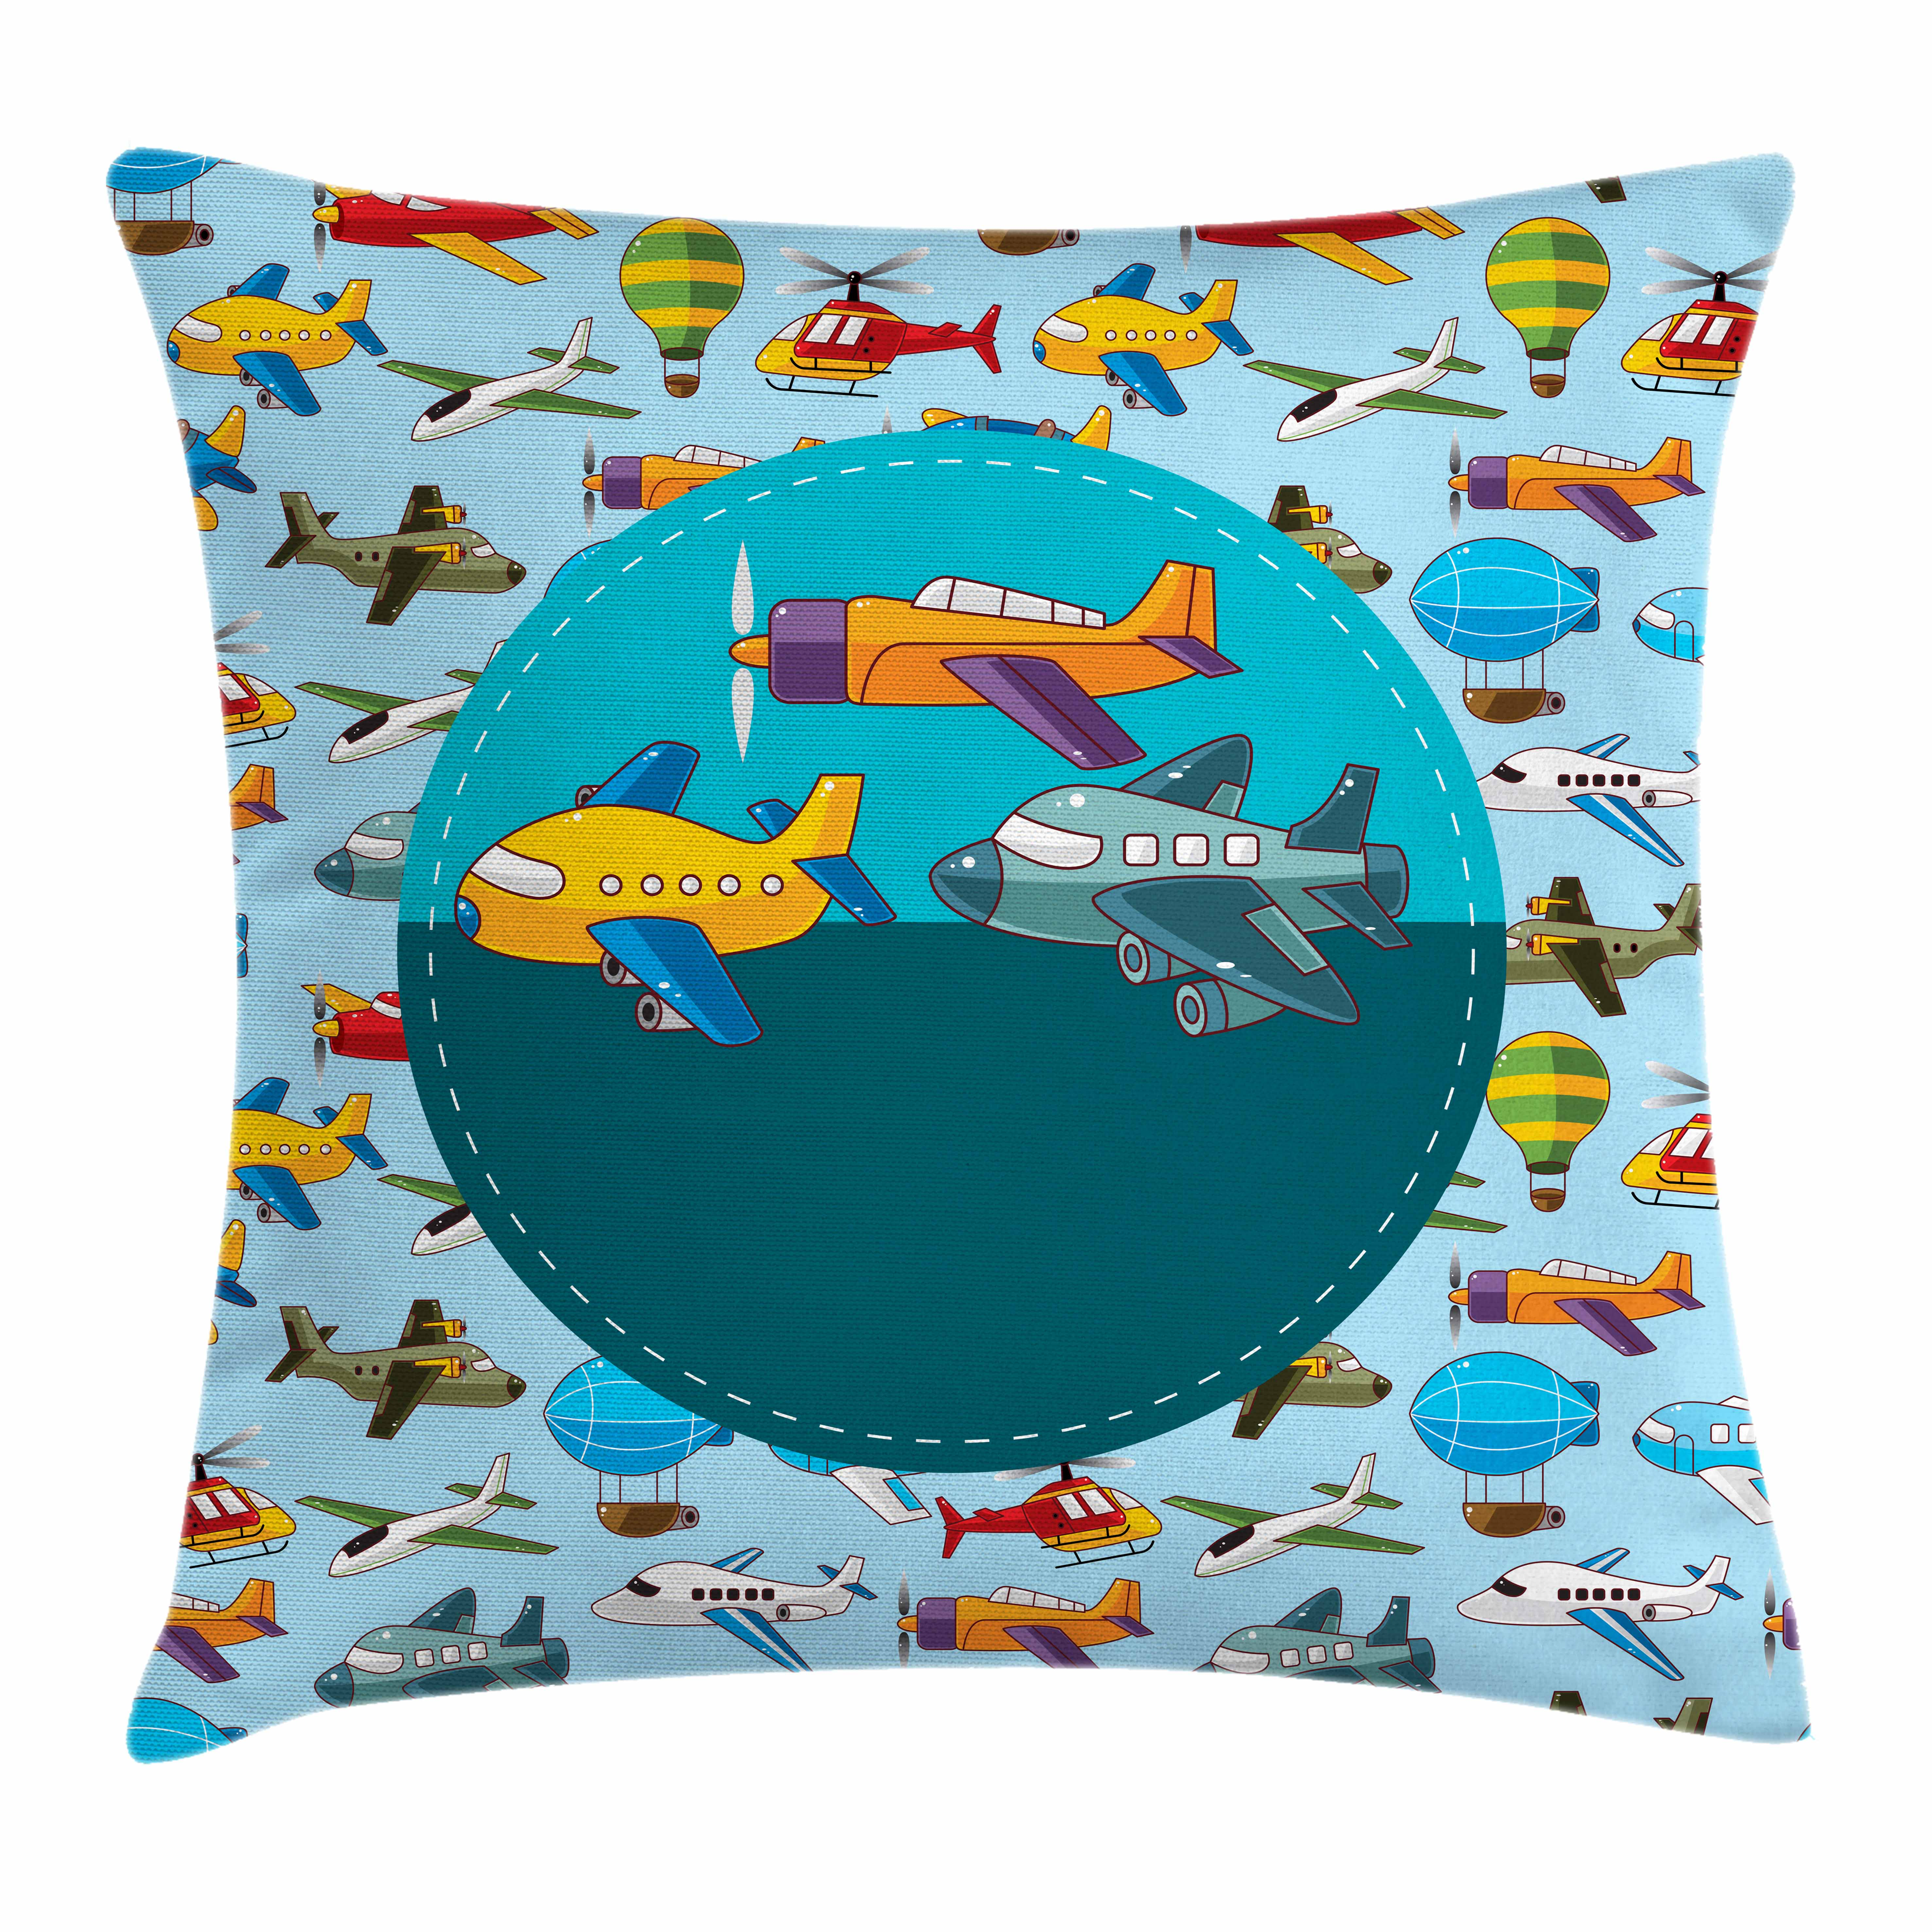 Kids Party Throw Pillow Cushion Cover, Colorful Retro Style Various Cartoon Airplanes Air Balloons Zeppelins Boys Kids, Decorative Square Accent Pillow Case, 16 X 16 Inches, Multicolor, by Ambesonne